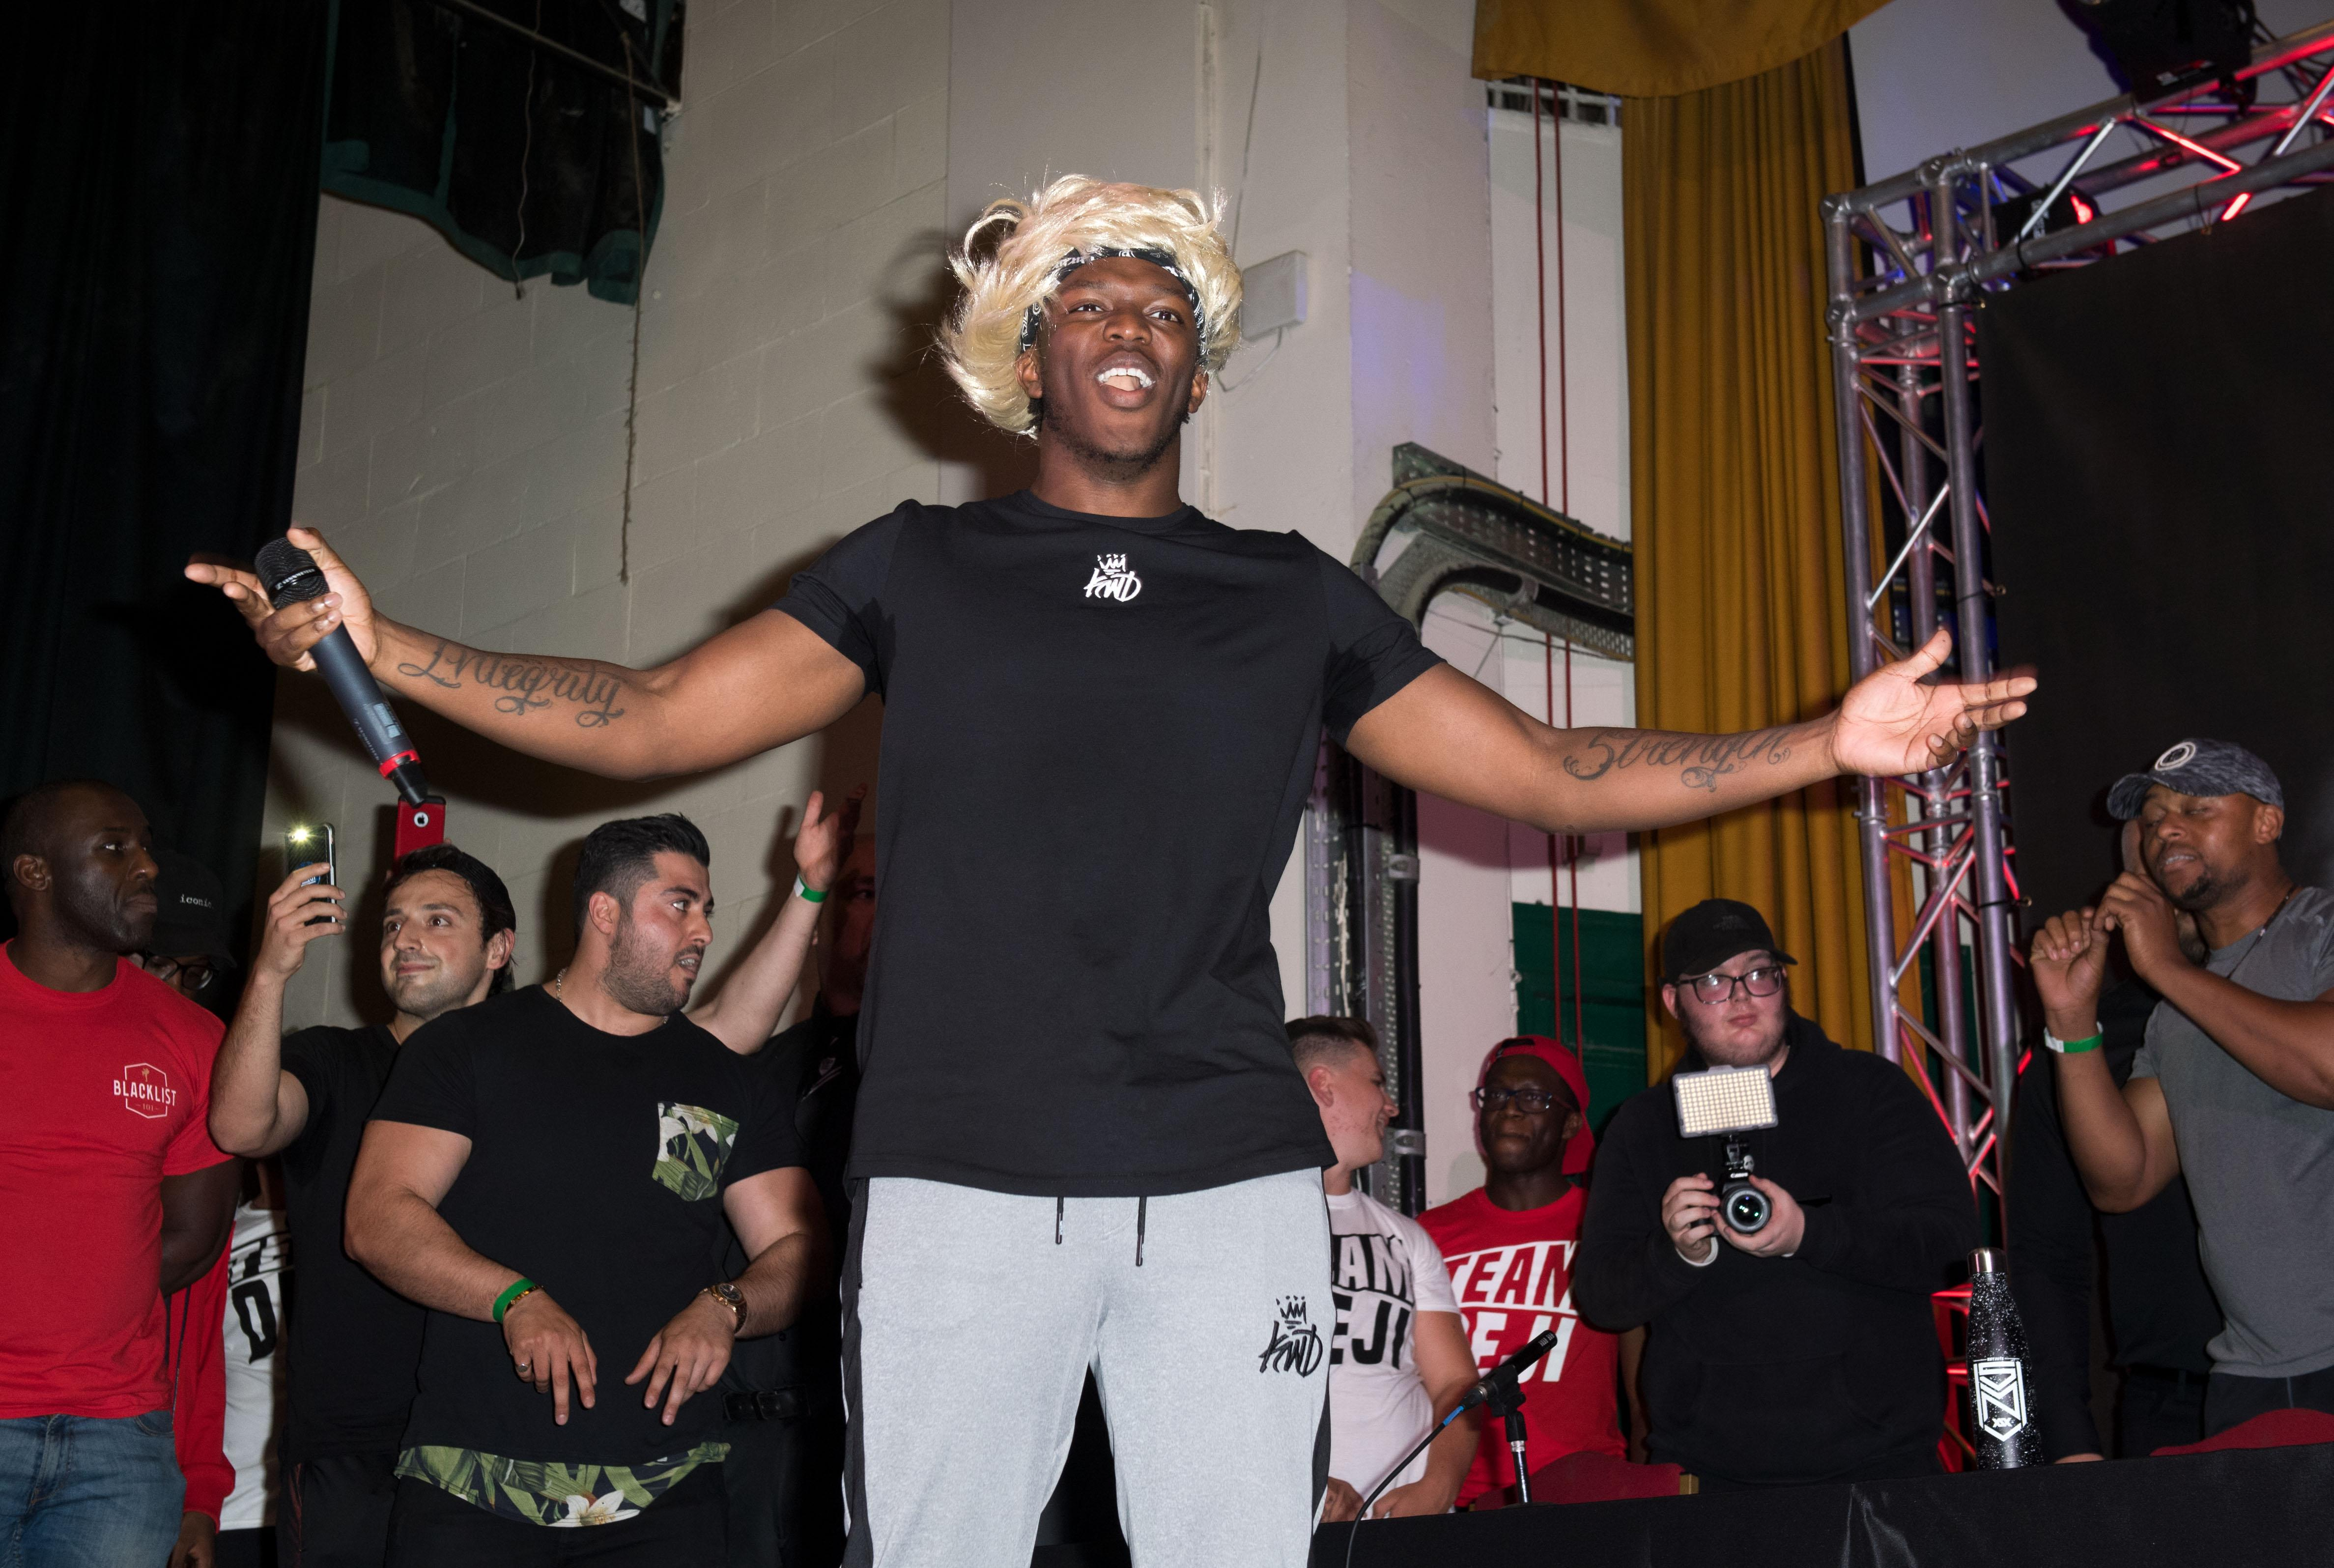 KSI will be on home turf as he faces Logan Paul at Manchester Arena